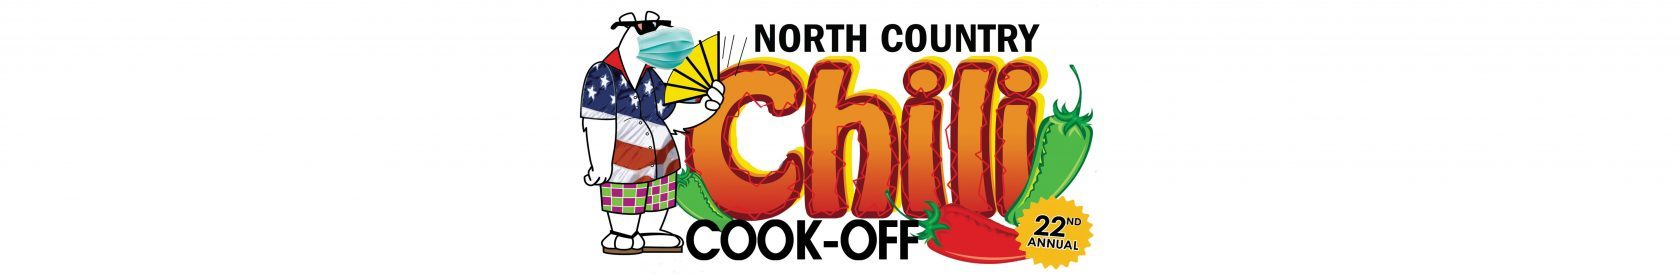 North Country Chili Cook-Off